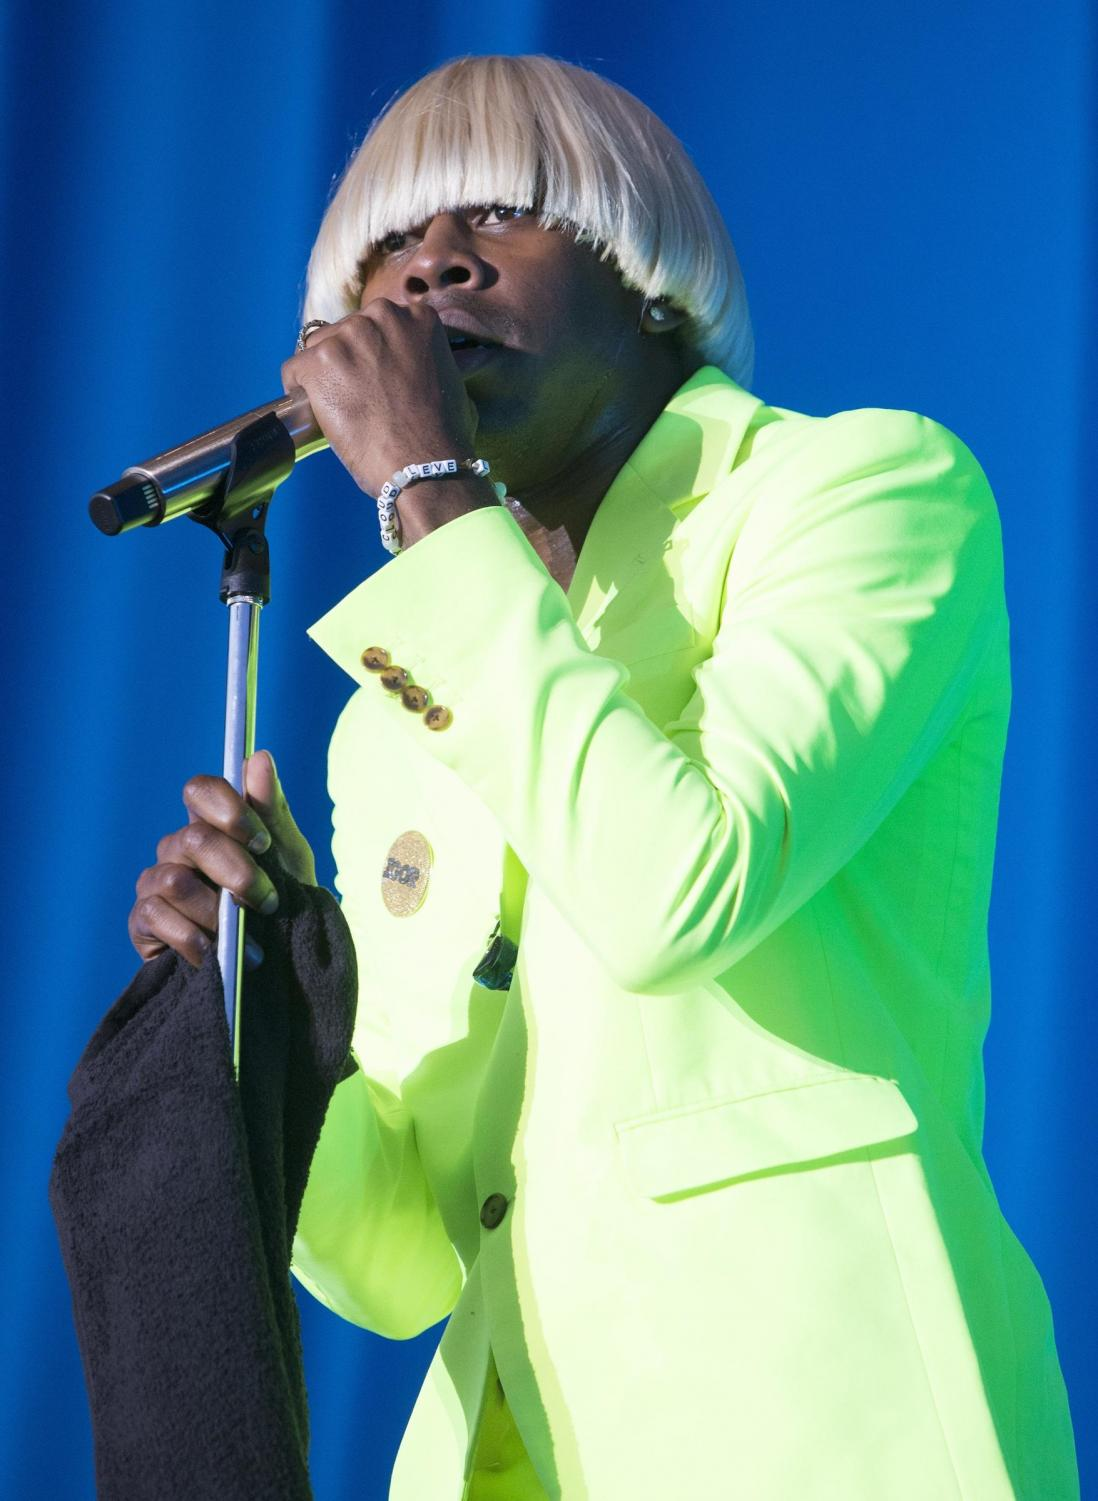 """Tyler the Creator dressed in his """"IGOR"""" outfit performing on stage. photo courtesy of News Tribune Service"""